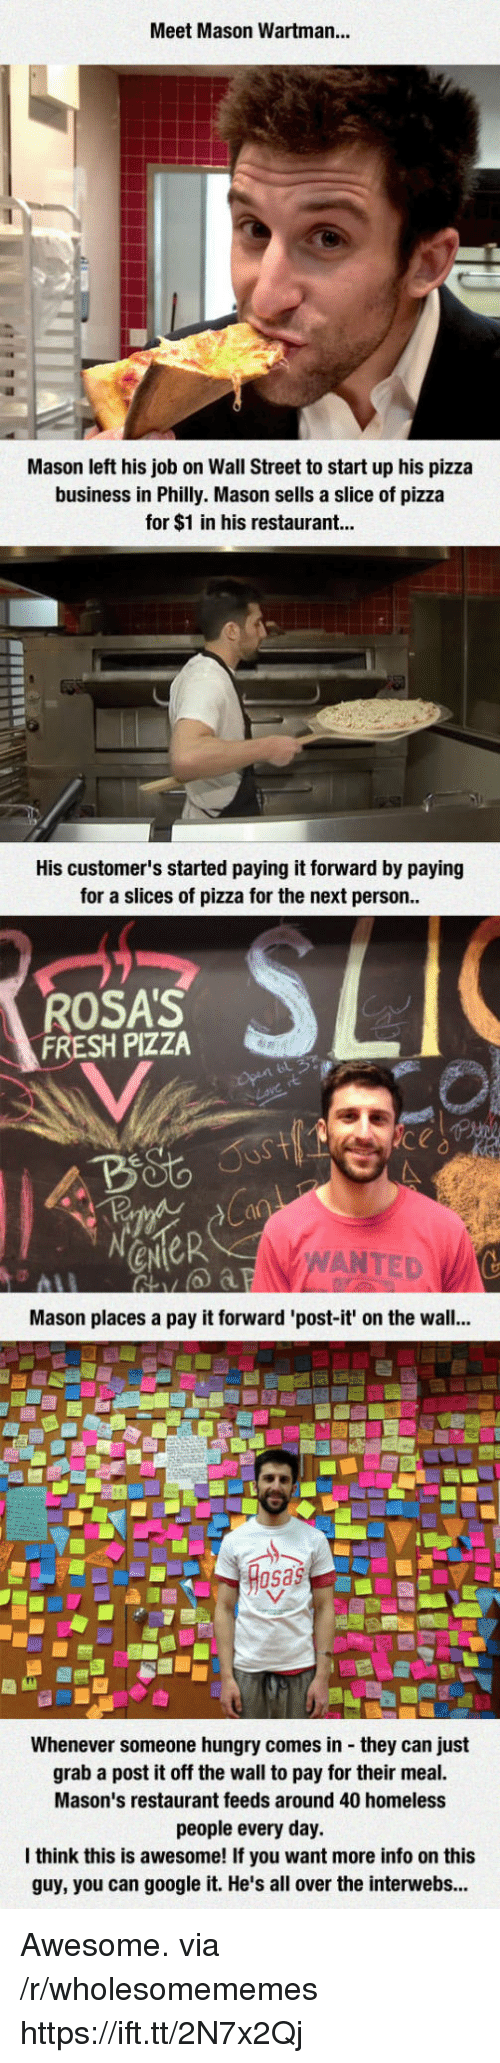 sas: Meet Mason Wartman...  Mason left his job on Wall Street to start up his pizza  business in Philly. Mason sells a slice of pizza  for $1 in his restaurant...  His customer's started paying it forward by paying  for a slices of pizza for the next person  ROSA'S  FRESH PIZZA  ANTED  Mason places a pay it forward 'post-it' on the wall...  sas  Whenever someone hungry comes in they can just  grab a post it off the wall to pay for their meal.  Mason's restaurant feeds around 40 homeless  people every day.  think this is awesome! If you want more info on this  guy, you can google it. He's all over the interwebs... Awesome. via /r/wholesomememes https://ift.tt/2N7x2Qj